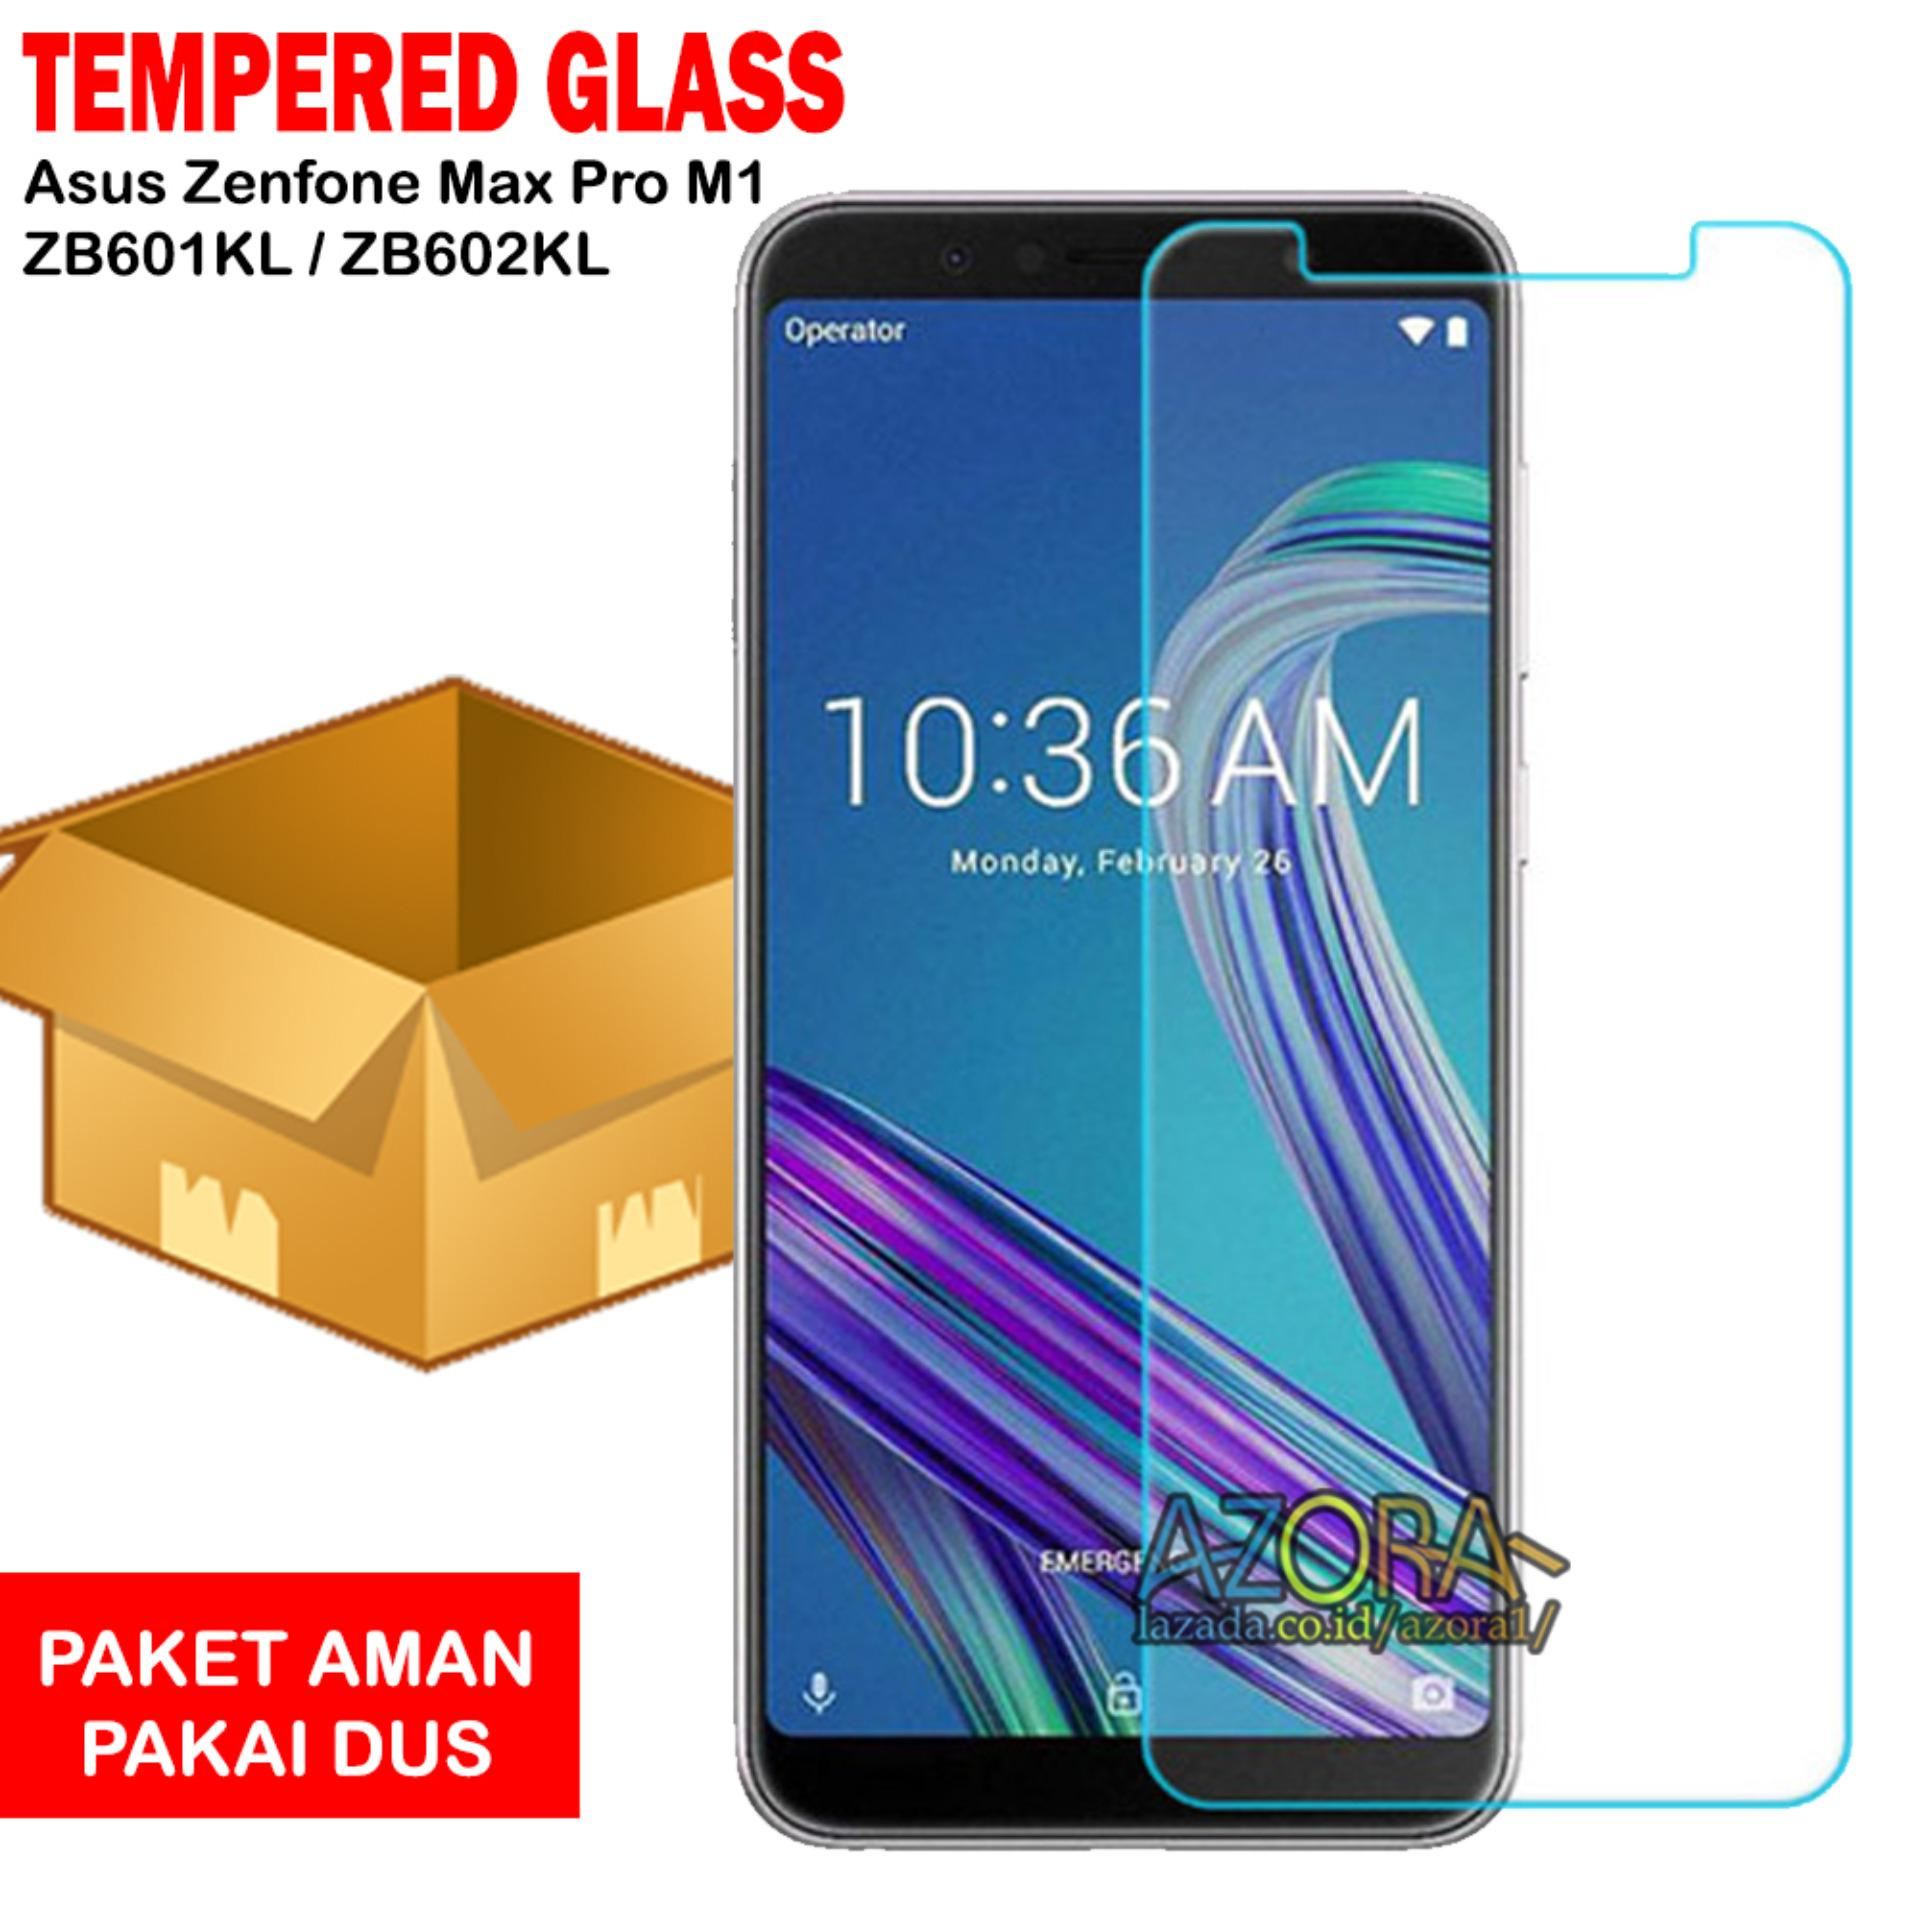 Tempered Glass Asus Zenfone Max Pro M1 ZB601KL / ZB602KL Screen Protector Pelindung Layar Kaca Anti